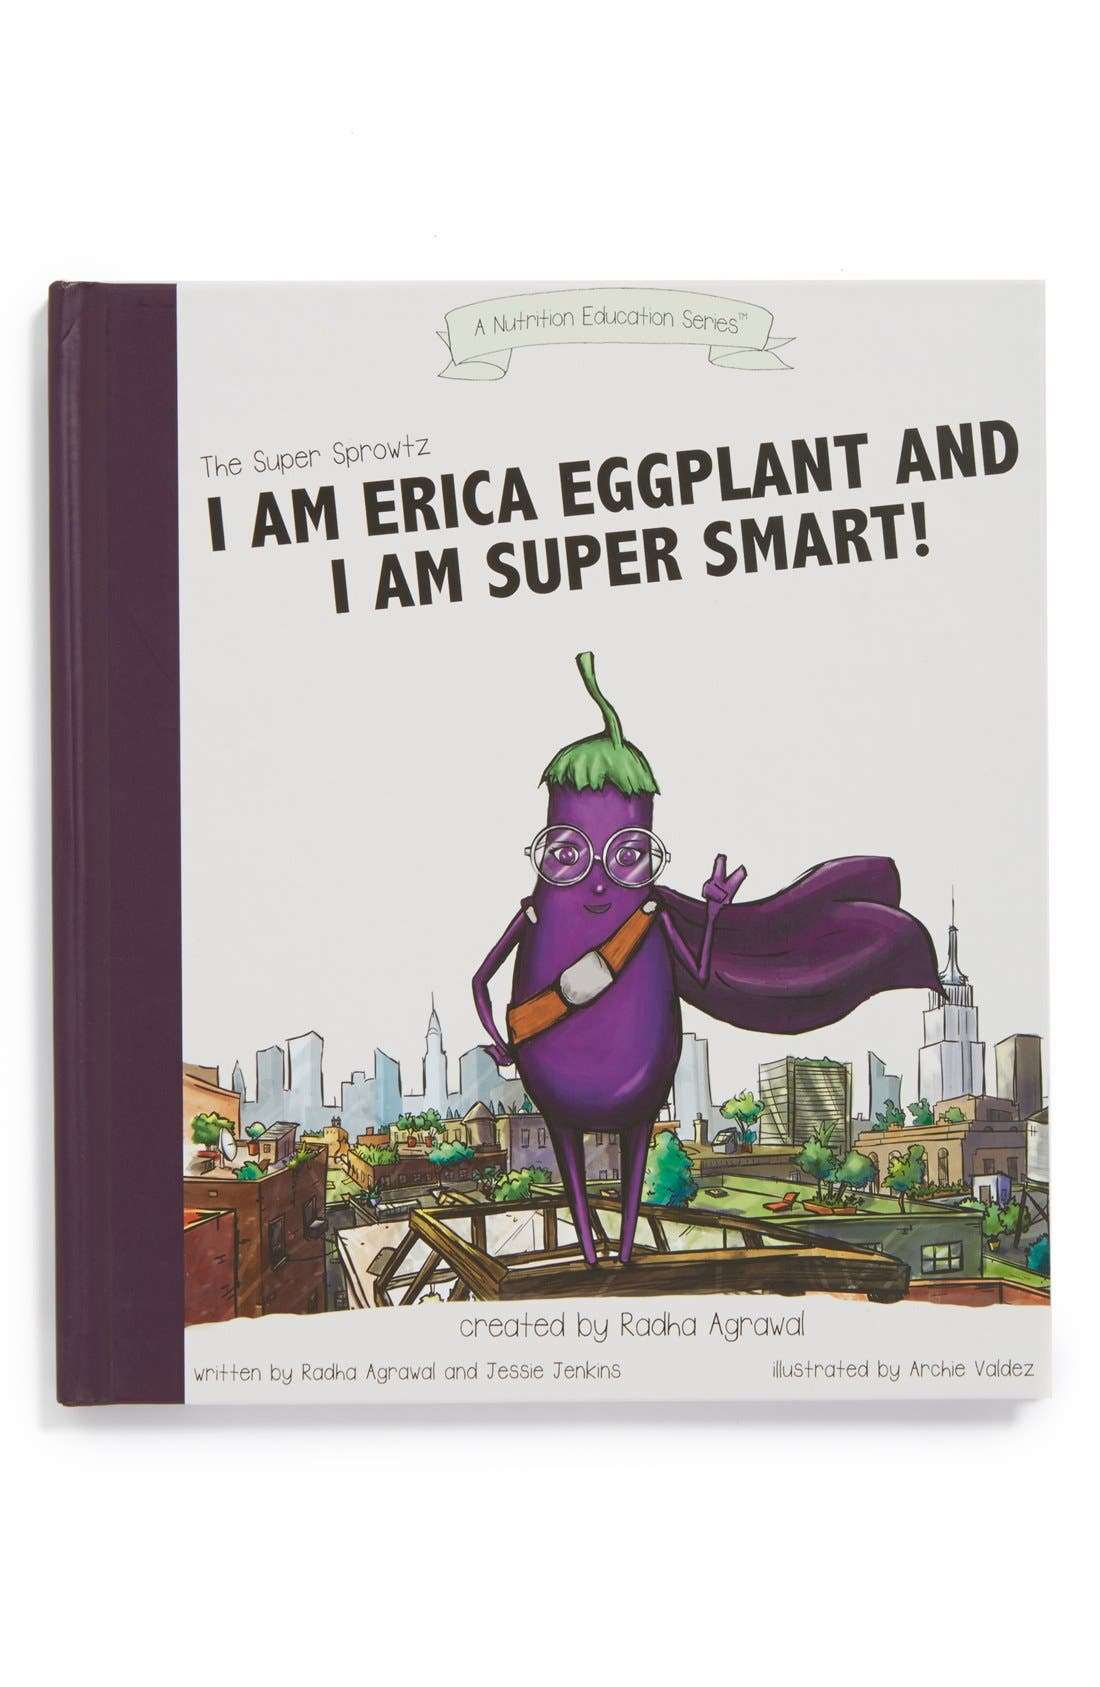 Alternate Image 1 Selected - Super Sprowtz 'I Am Erica Eggplant' Book